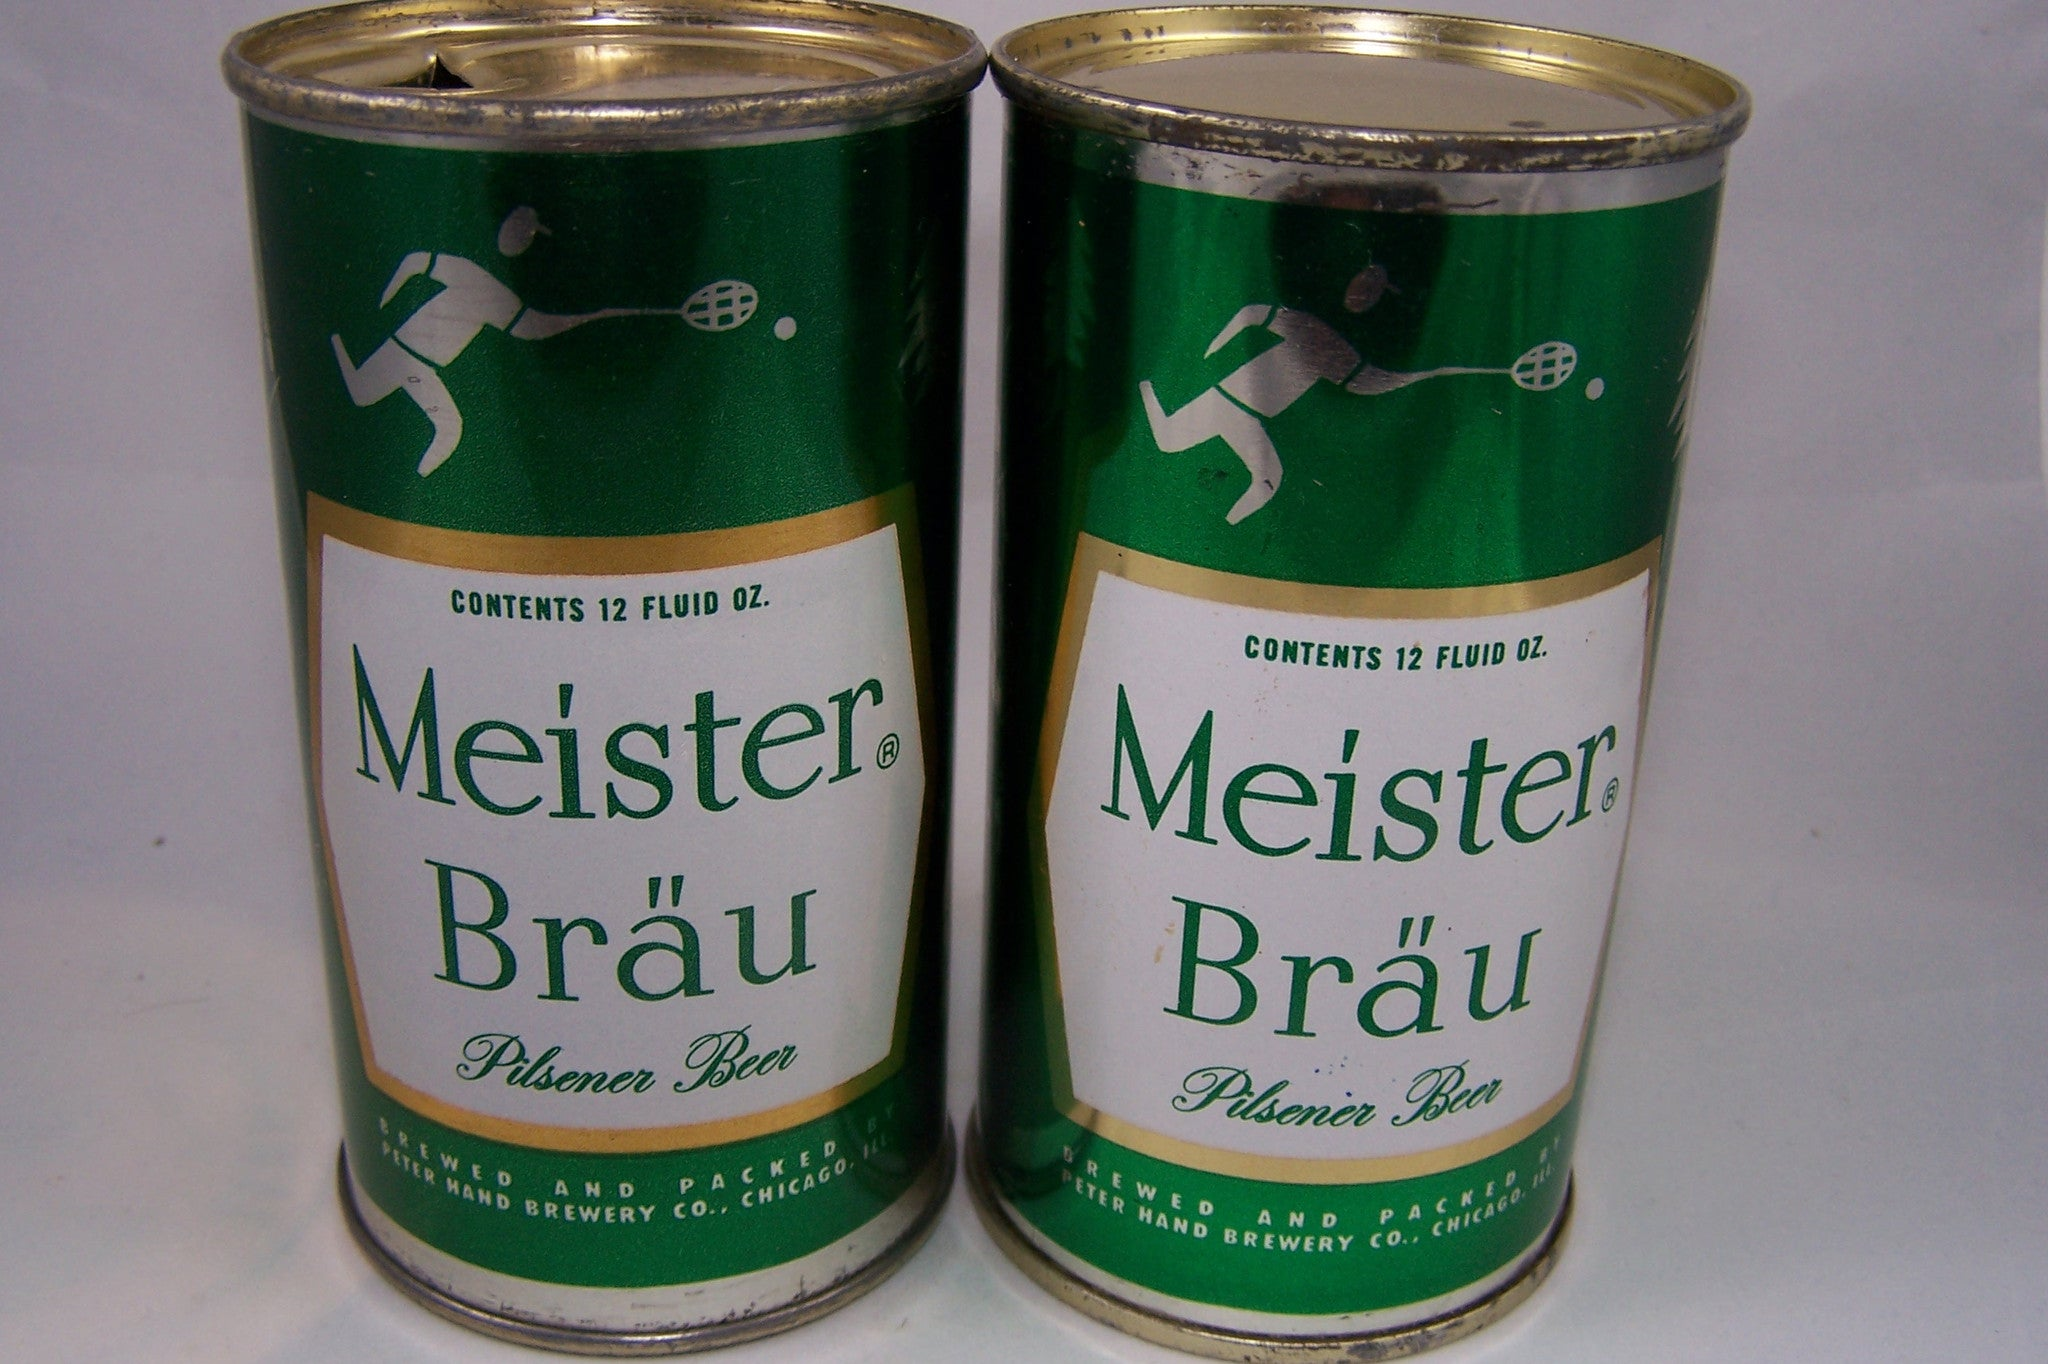 Meister Brau (Sports) Pilsener Beer (Enamel) USBC  N.L Grade 1/1+ Sold on 6/18/16+